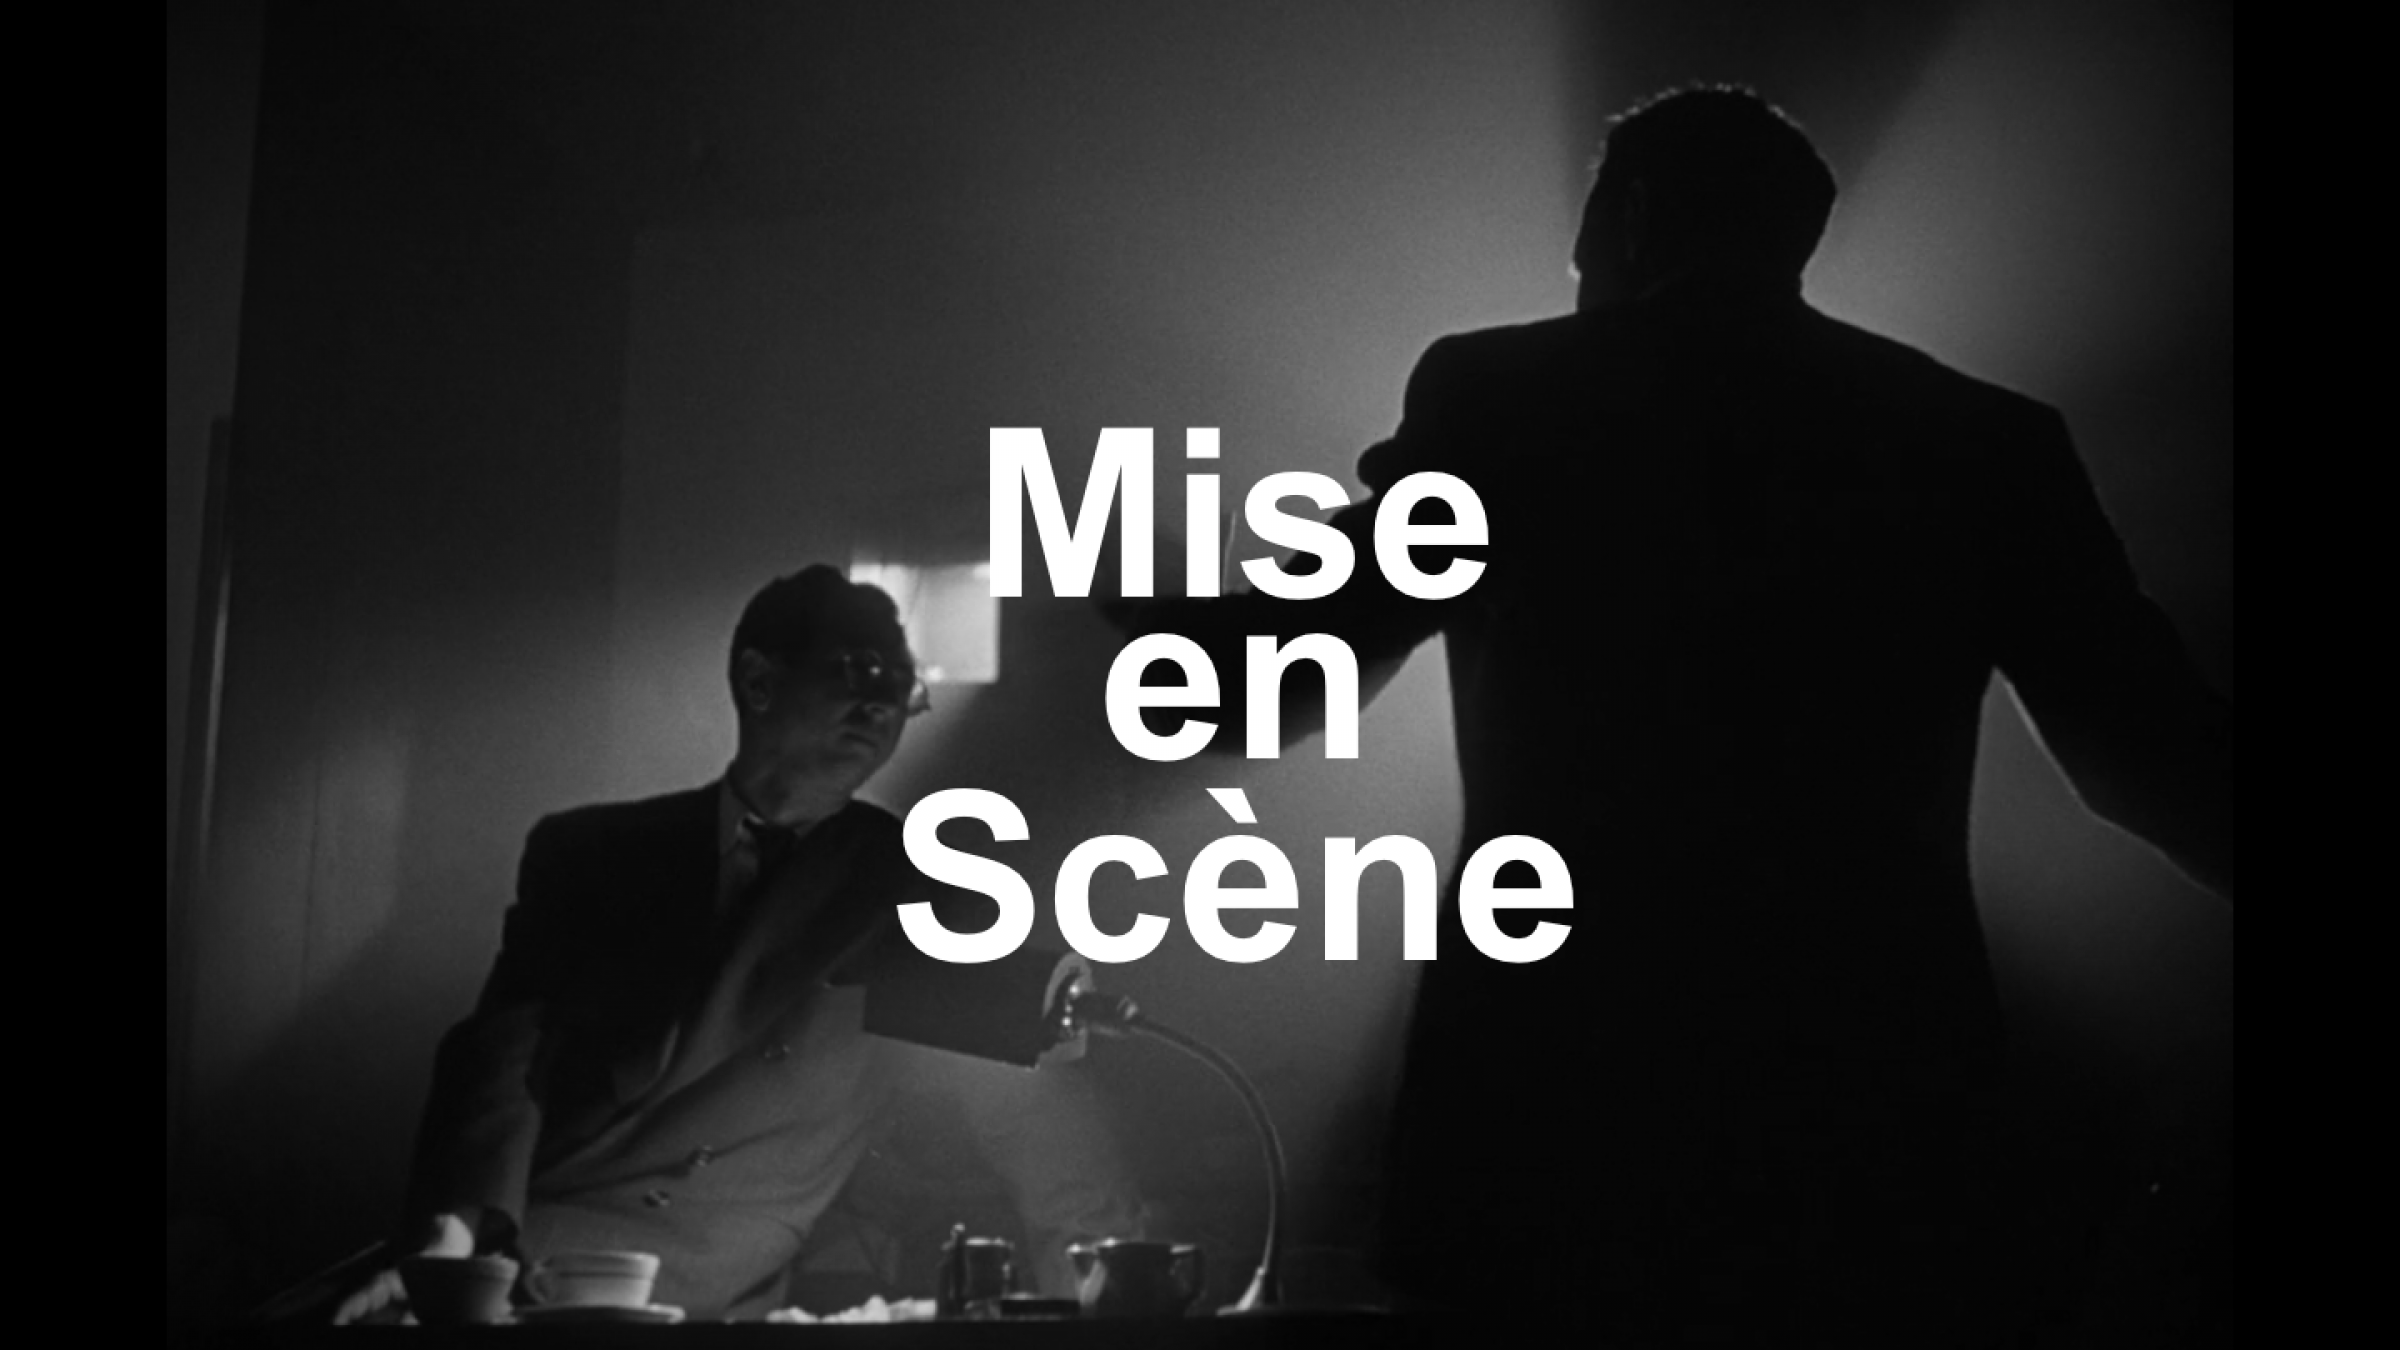 Learn 15 Key Elements of Mise-en-Scène from This Handy ...